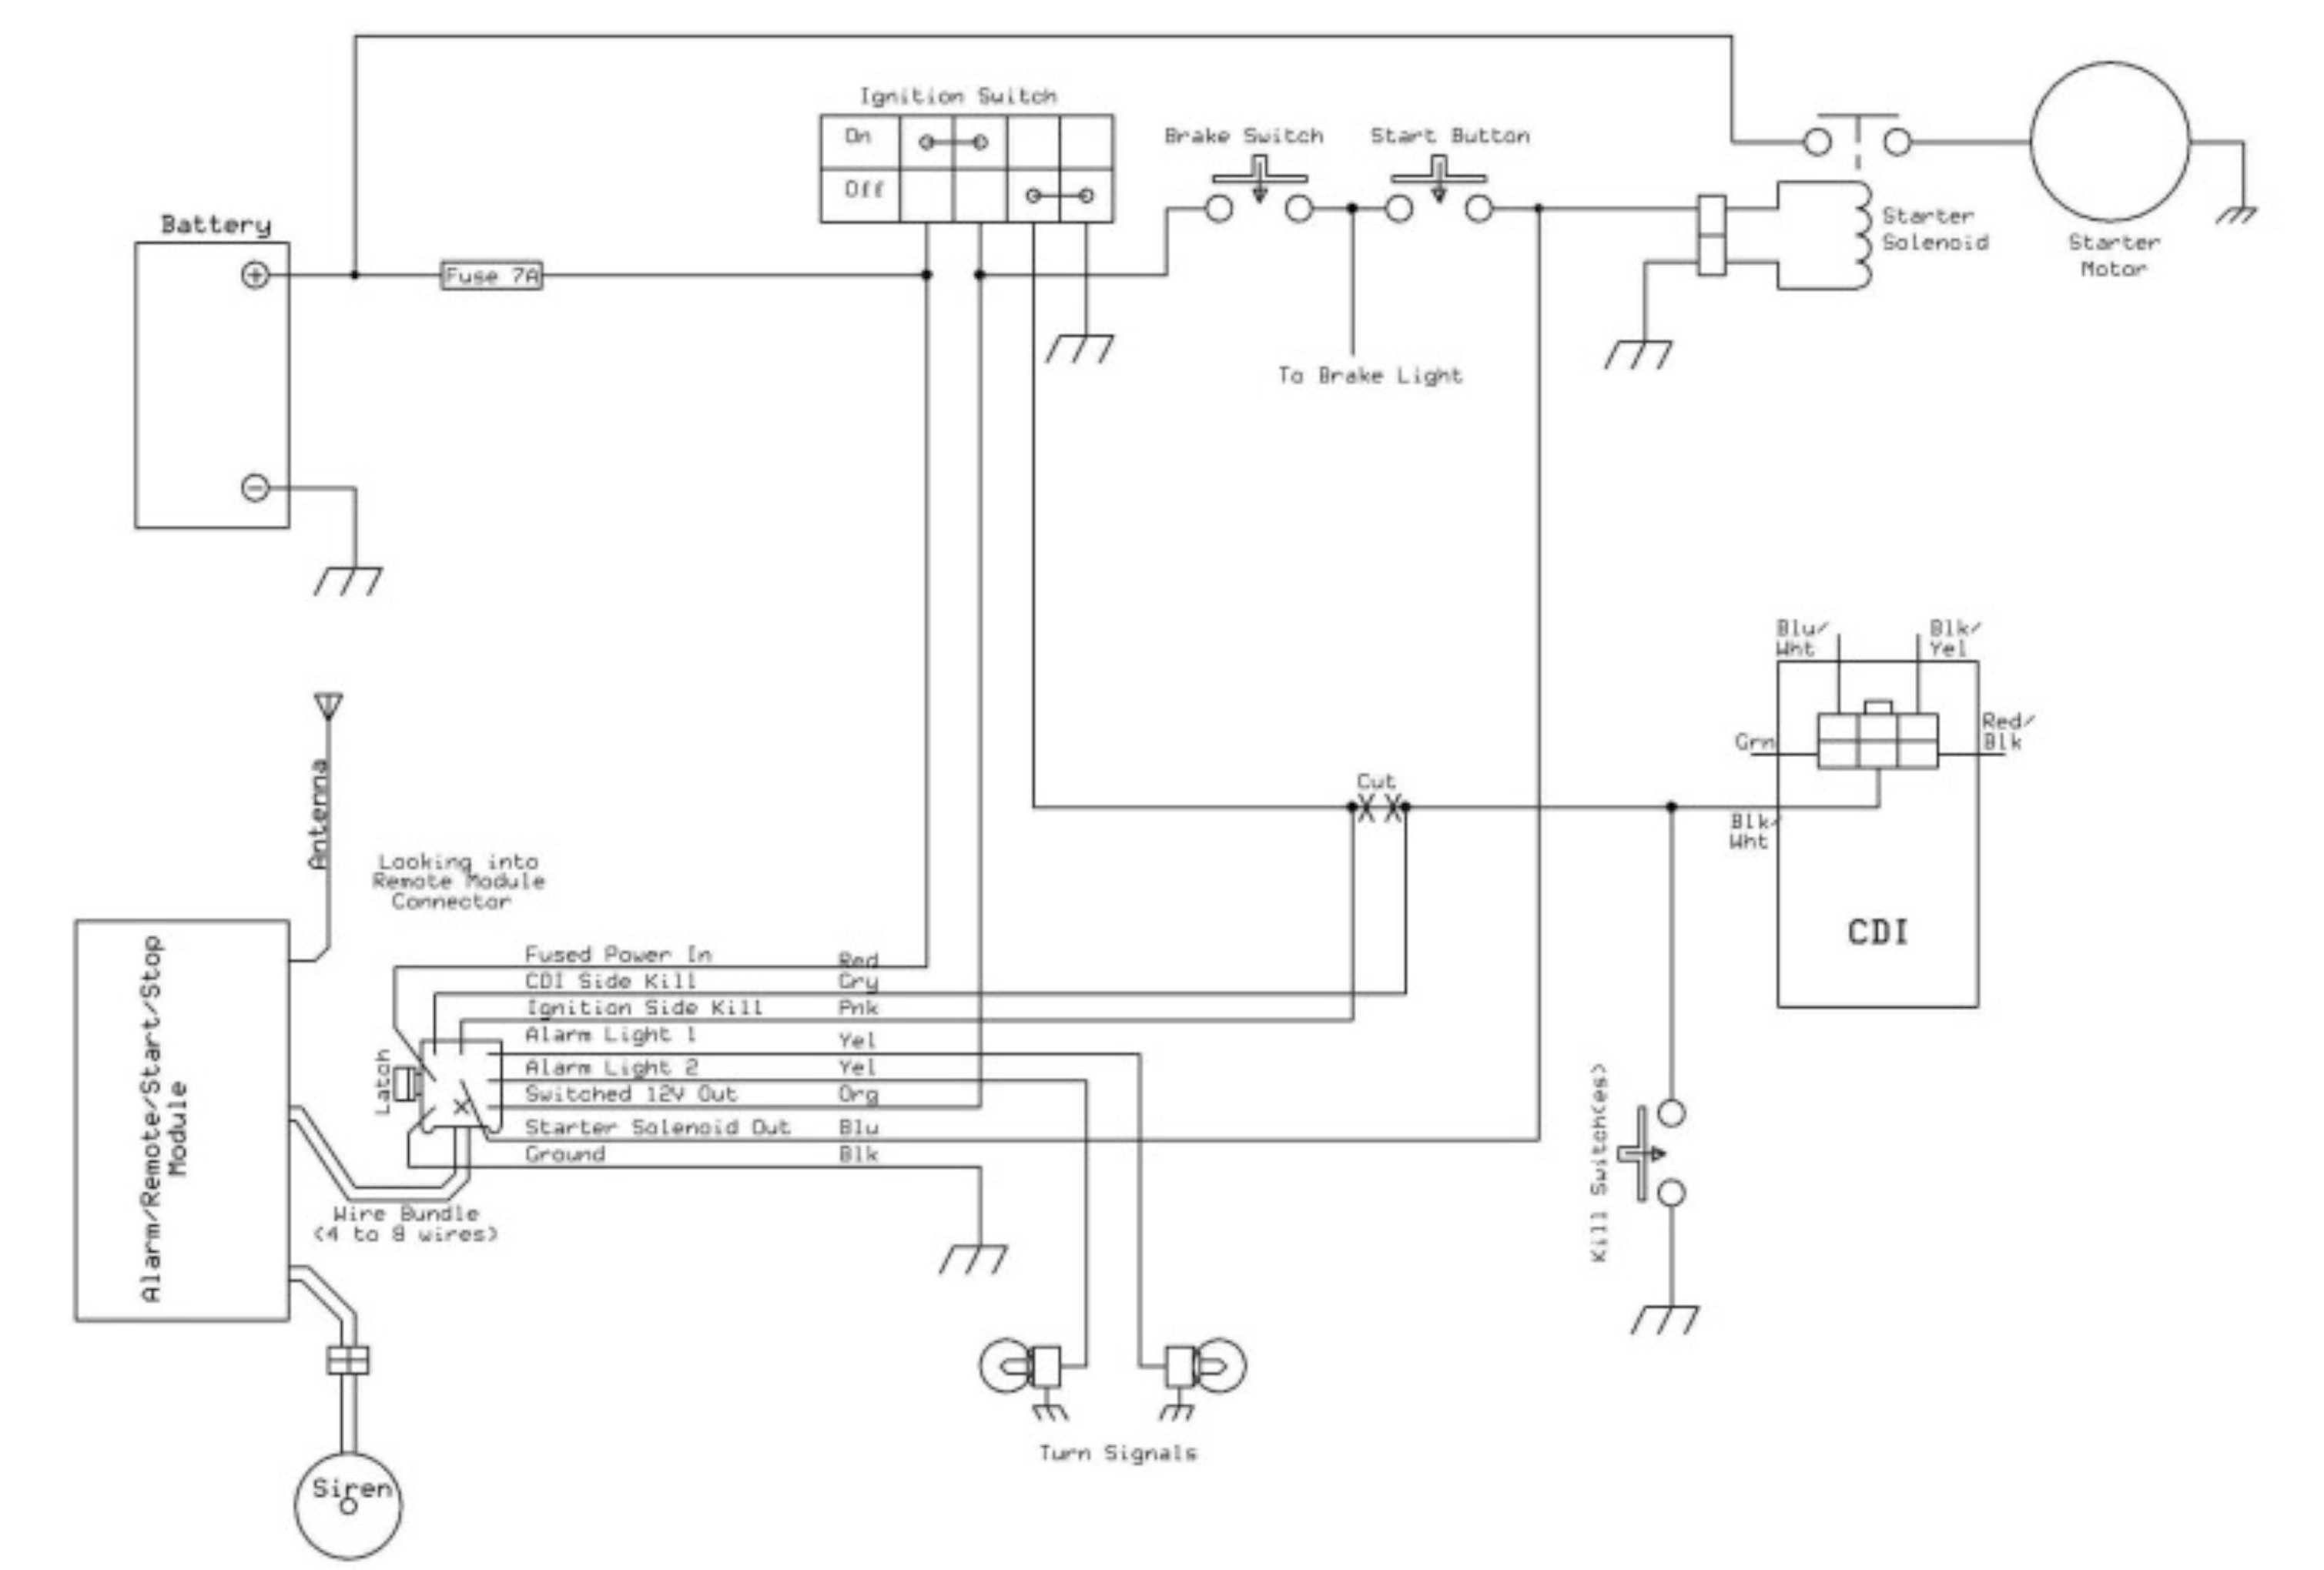 Chinese Scooter Engine Diagram Howhit 150 Wire Diagram Wiring Diagram Of Chinese Scooter Engine Diagram